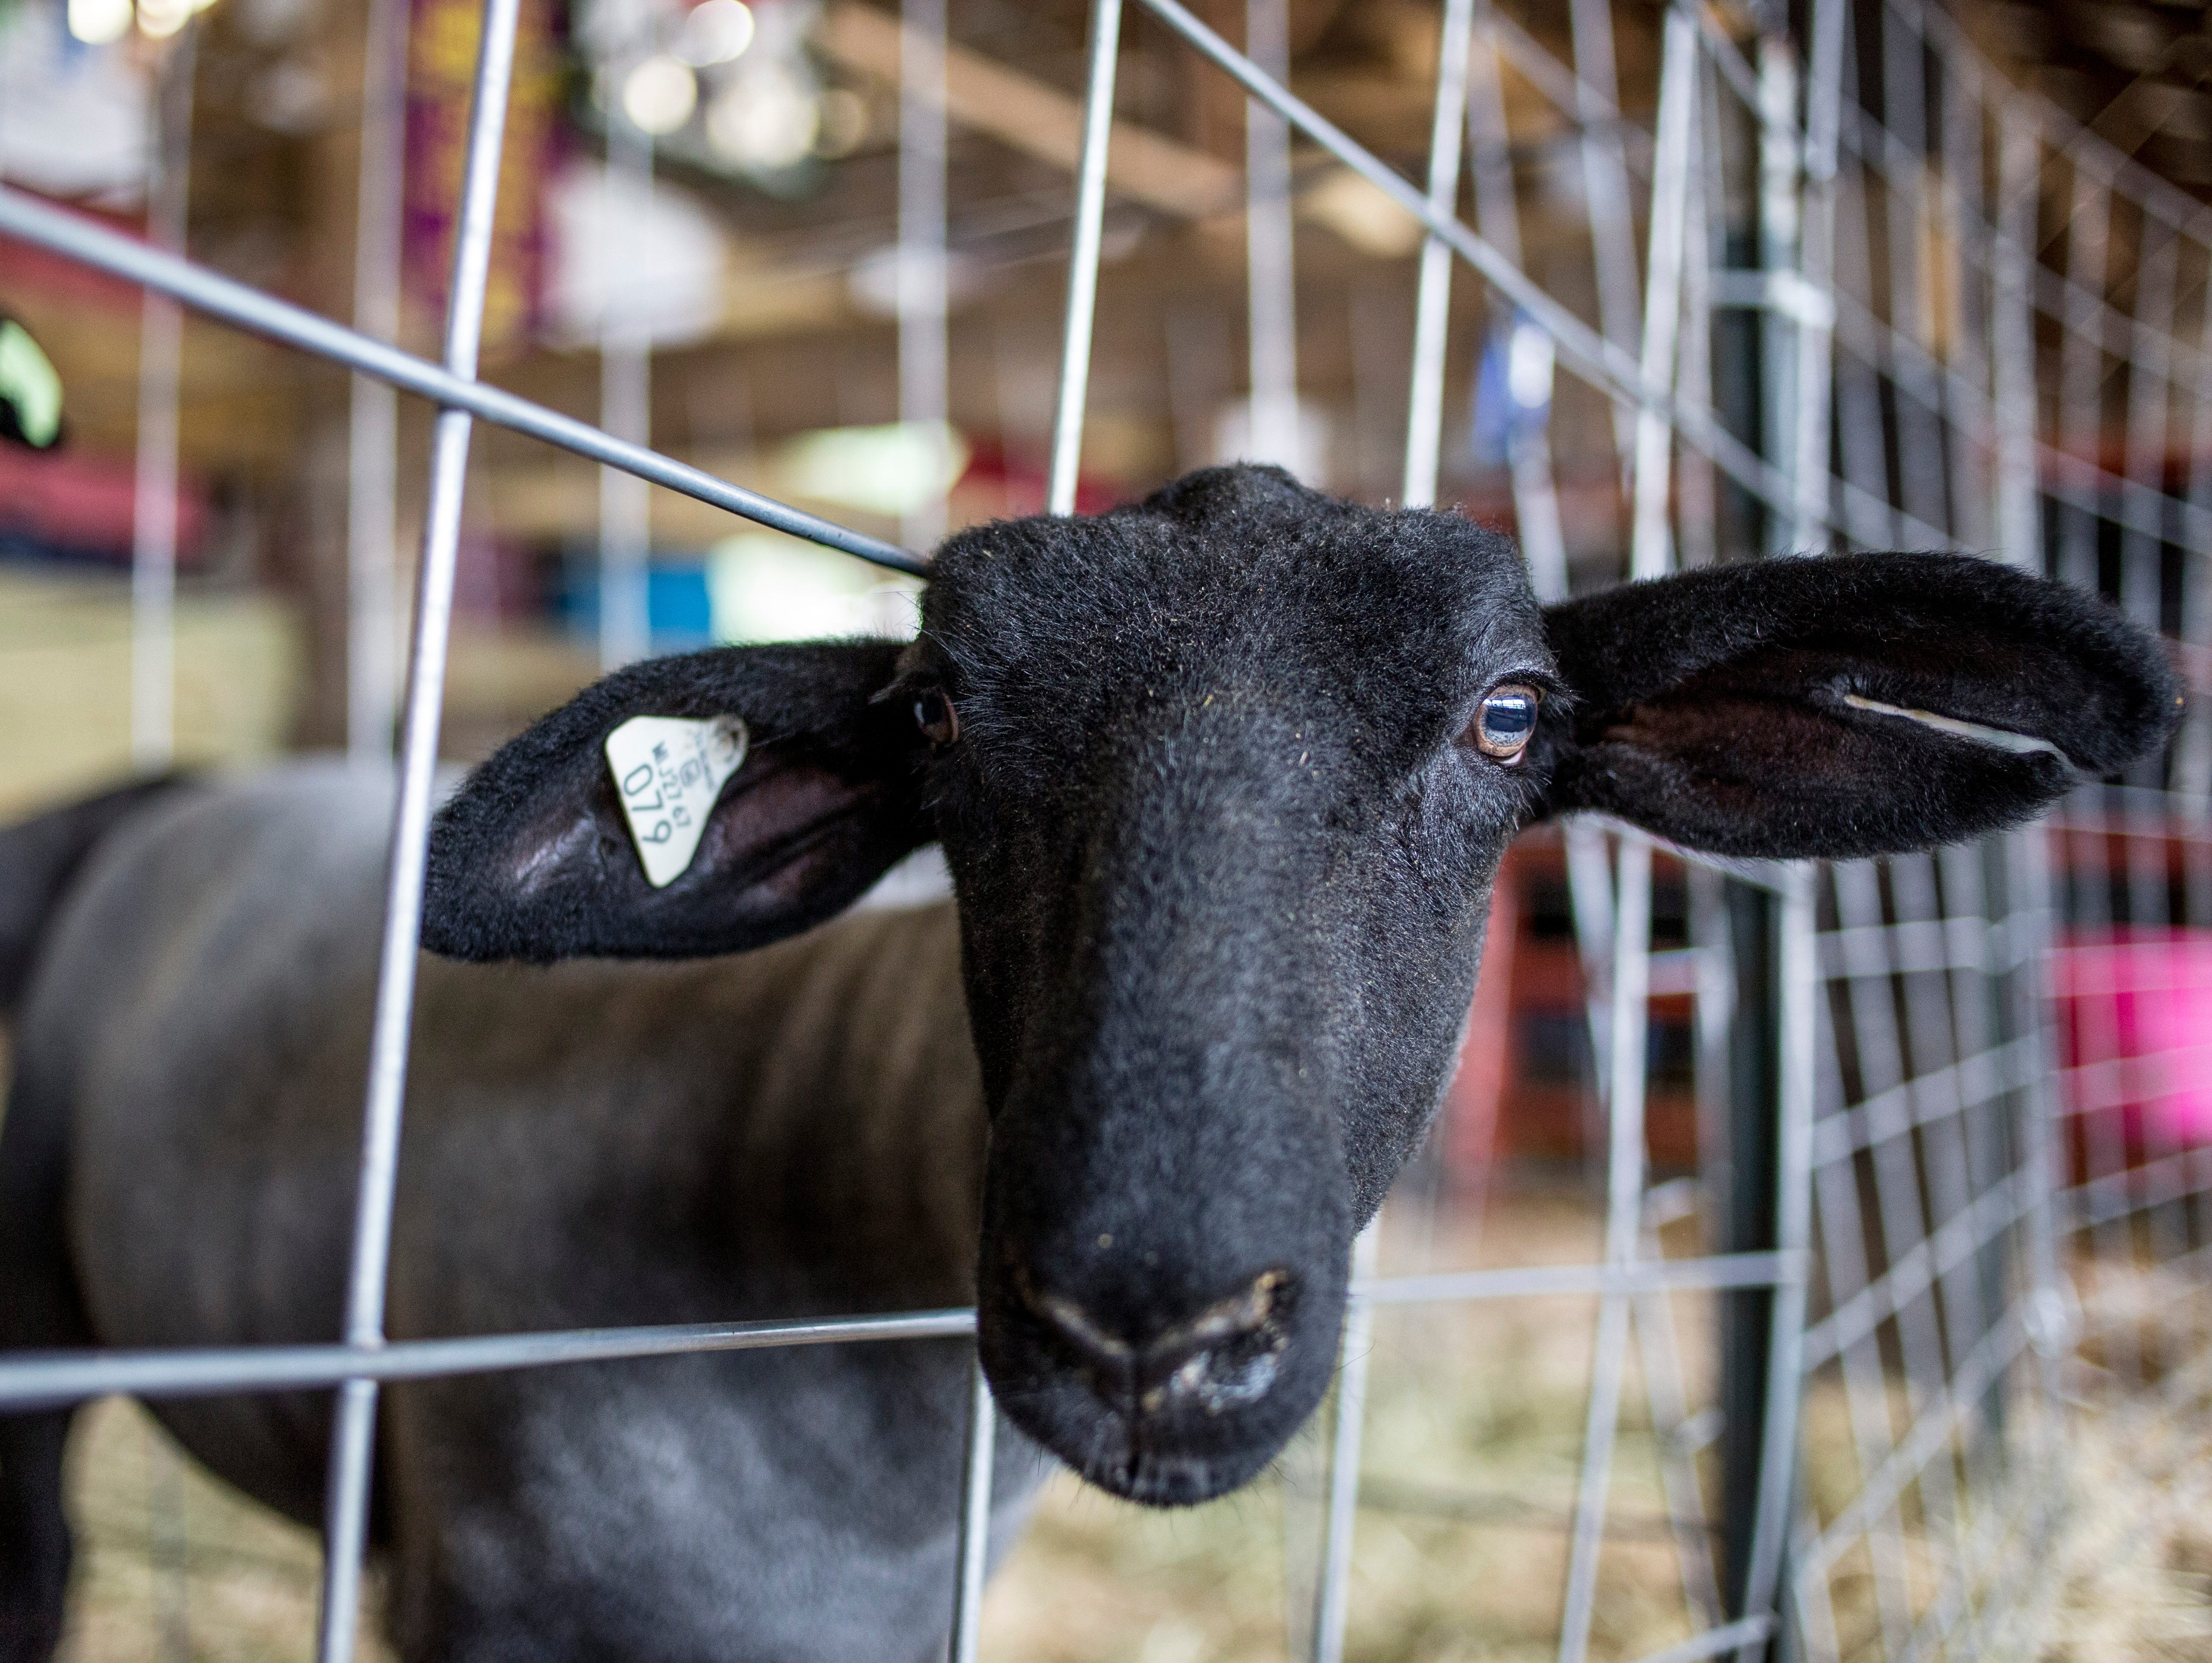 4 H is more than animals, find out how to get involved